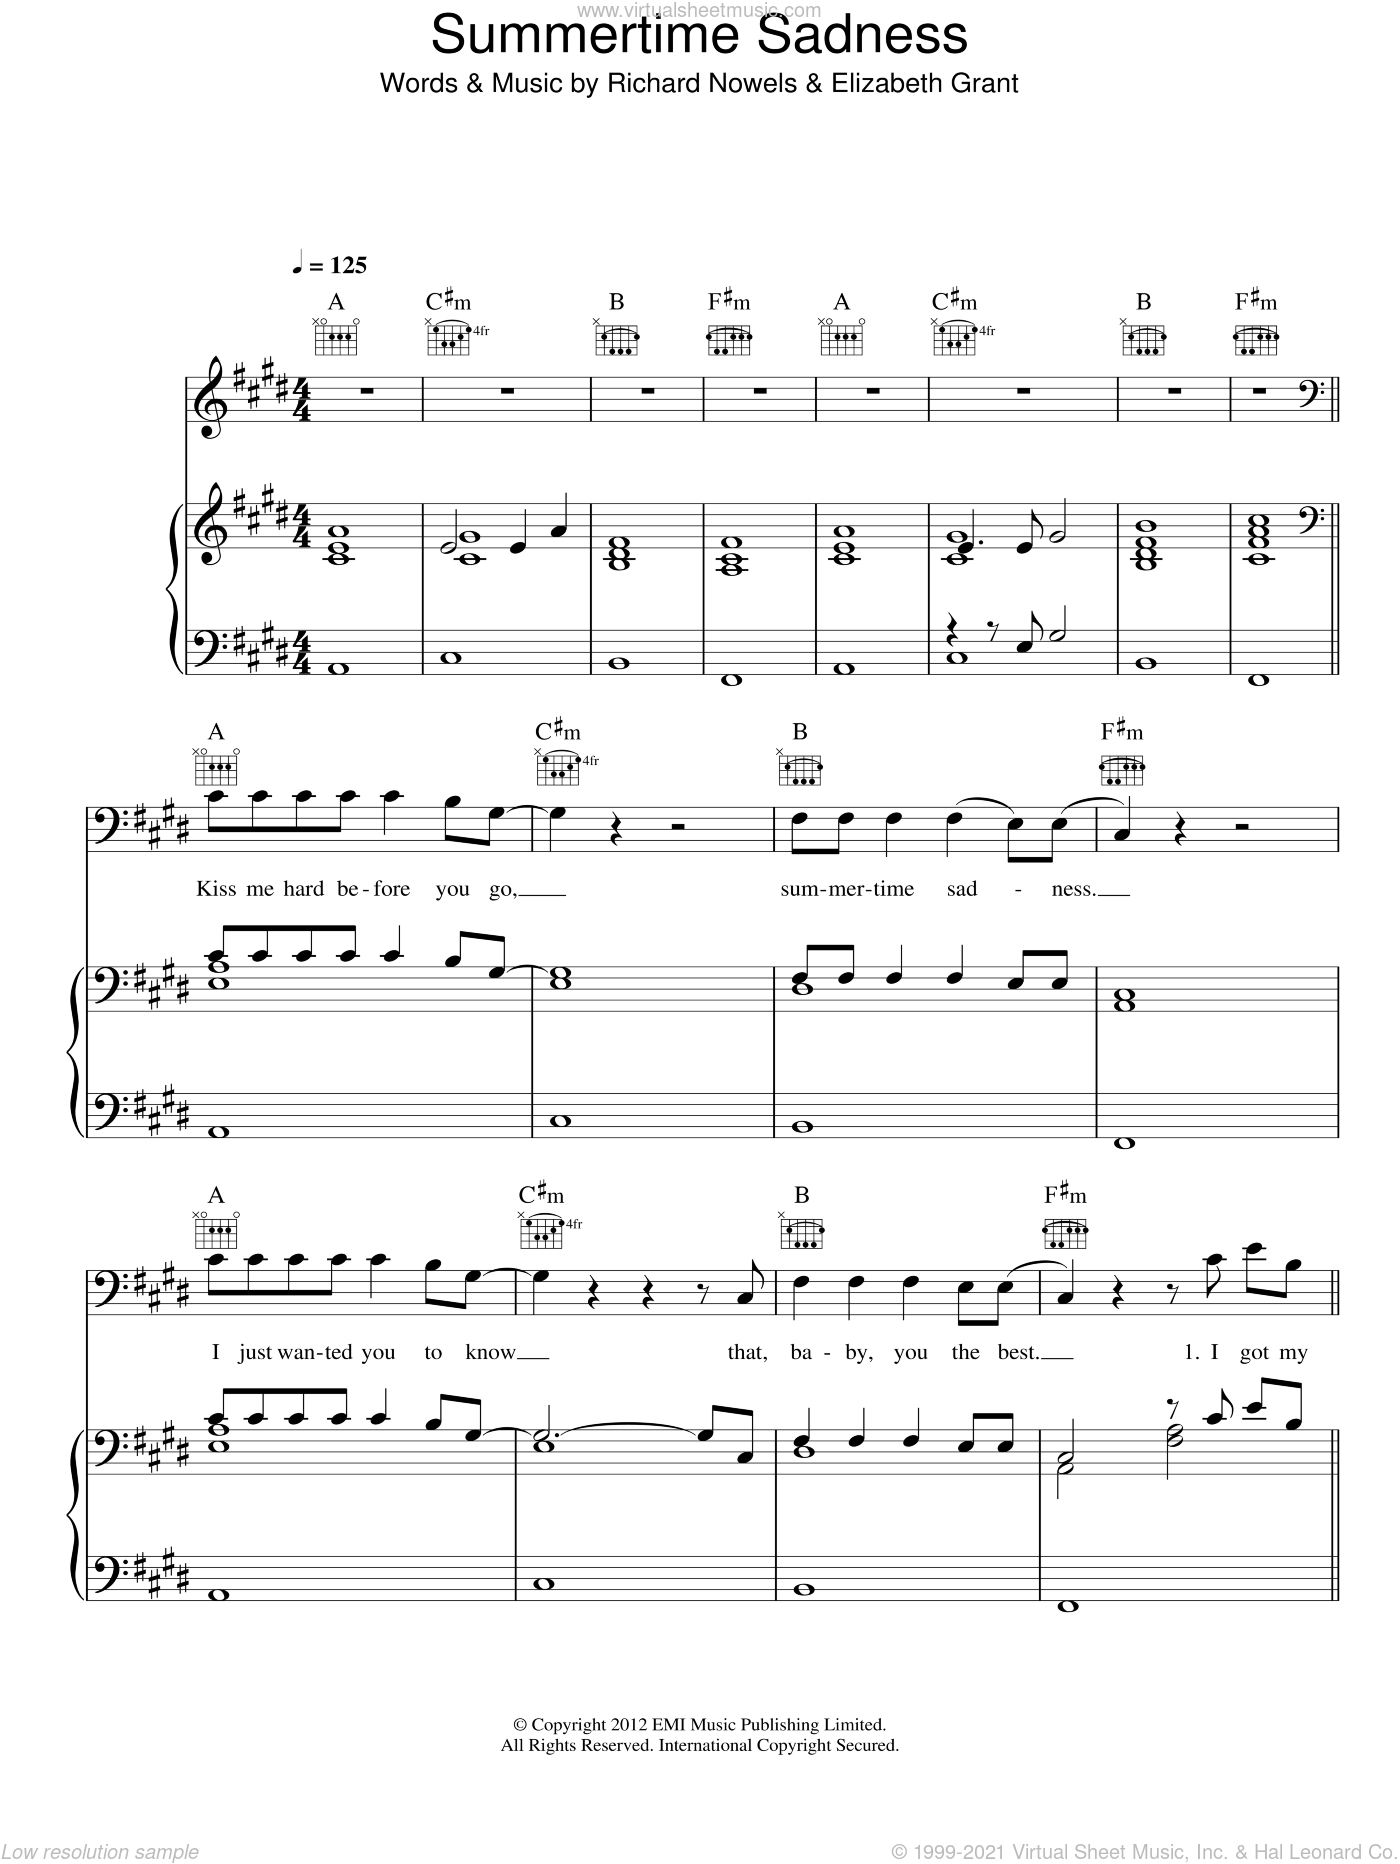 Summertime Sadness sheet music for voice, piano or guitar by Lana Del Rey, Elizabeth Grant and Rick Nowels, intermediate skill level